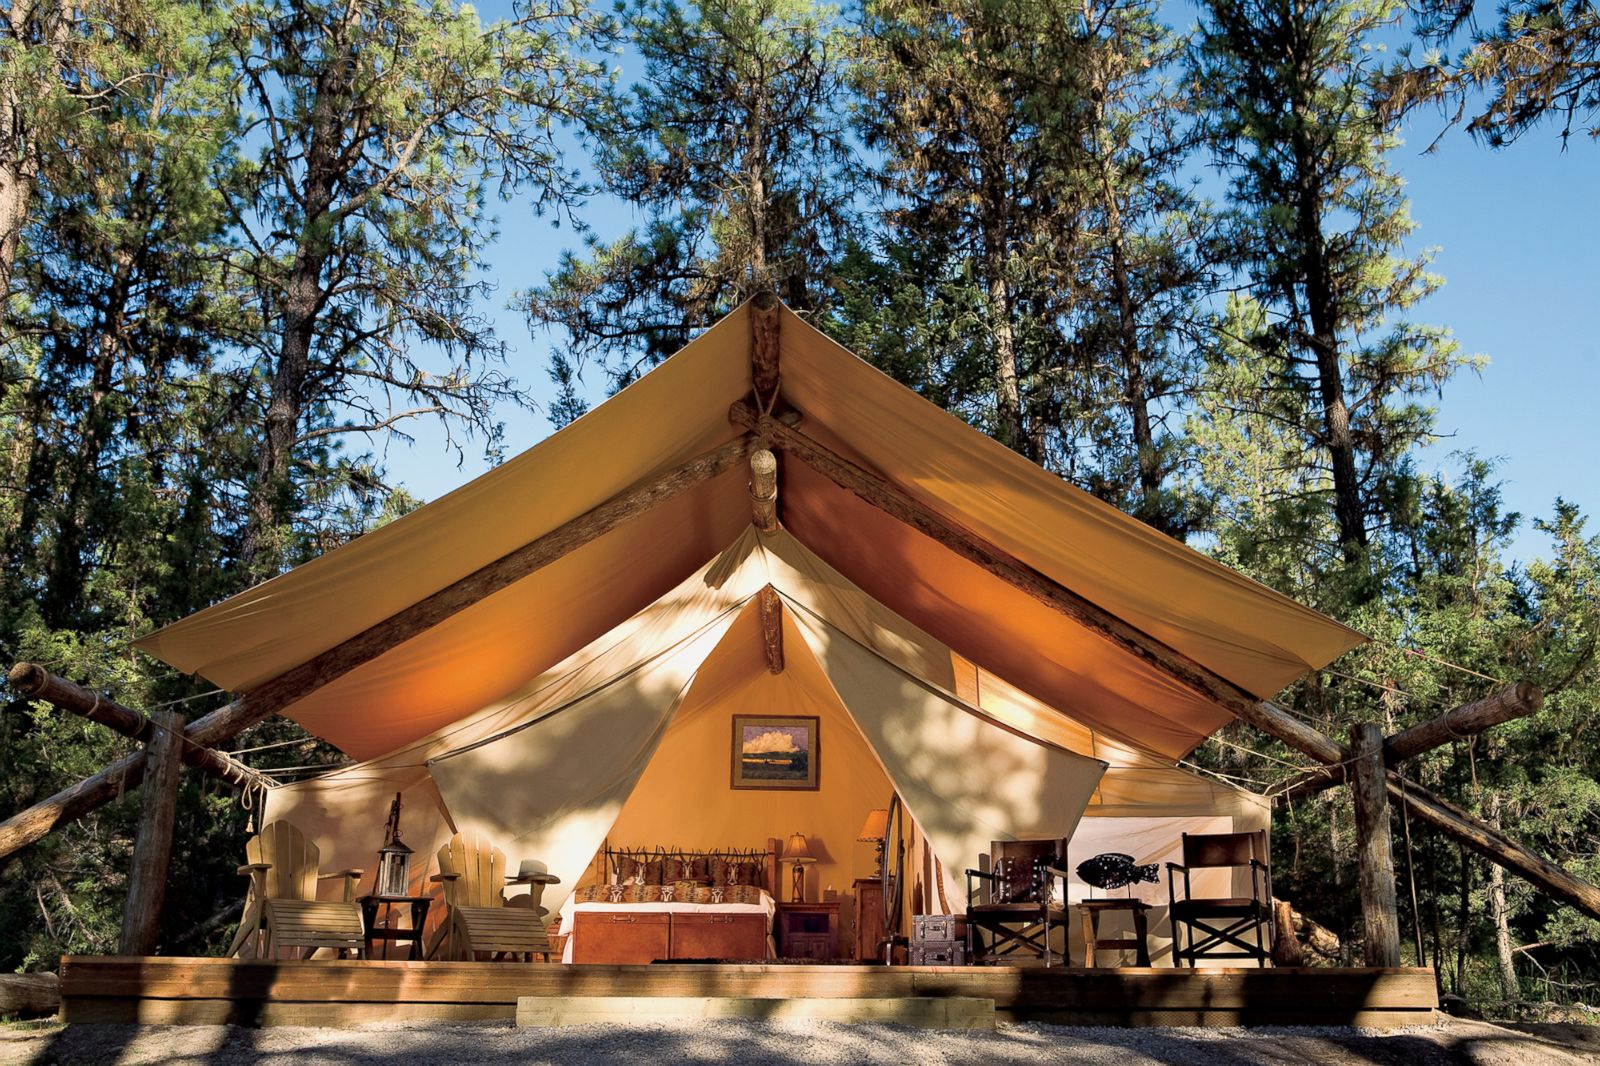 A two-bedroom tent at River C& one of the many places to gl& at the Resort at Paws Up. Courtesy of the Resort at Paws Up & Glamping: The 9 best resorts in the U.S. - Curbed